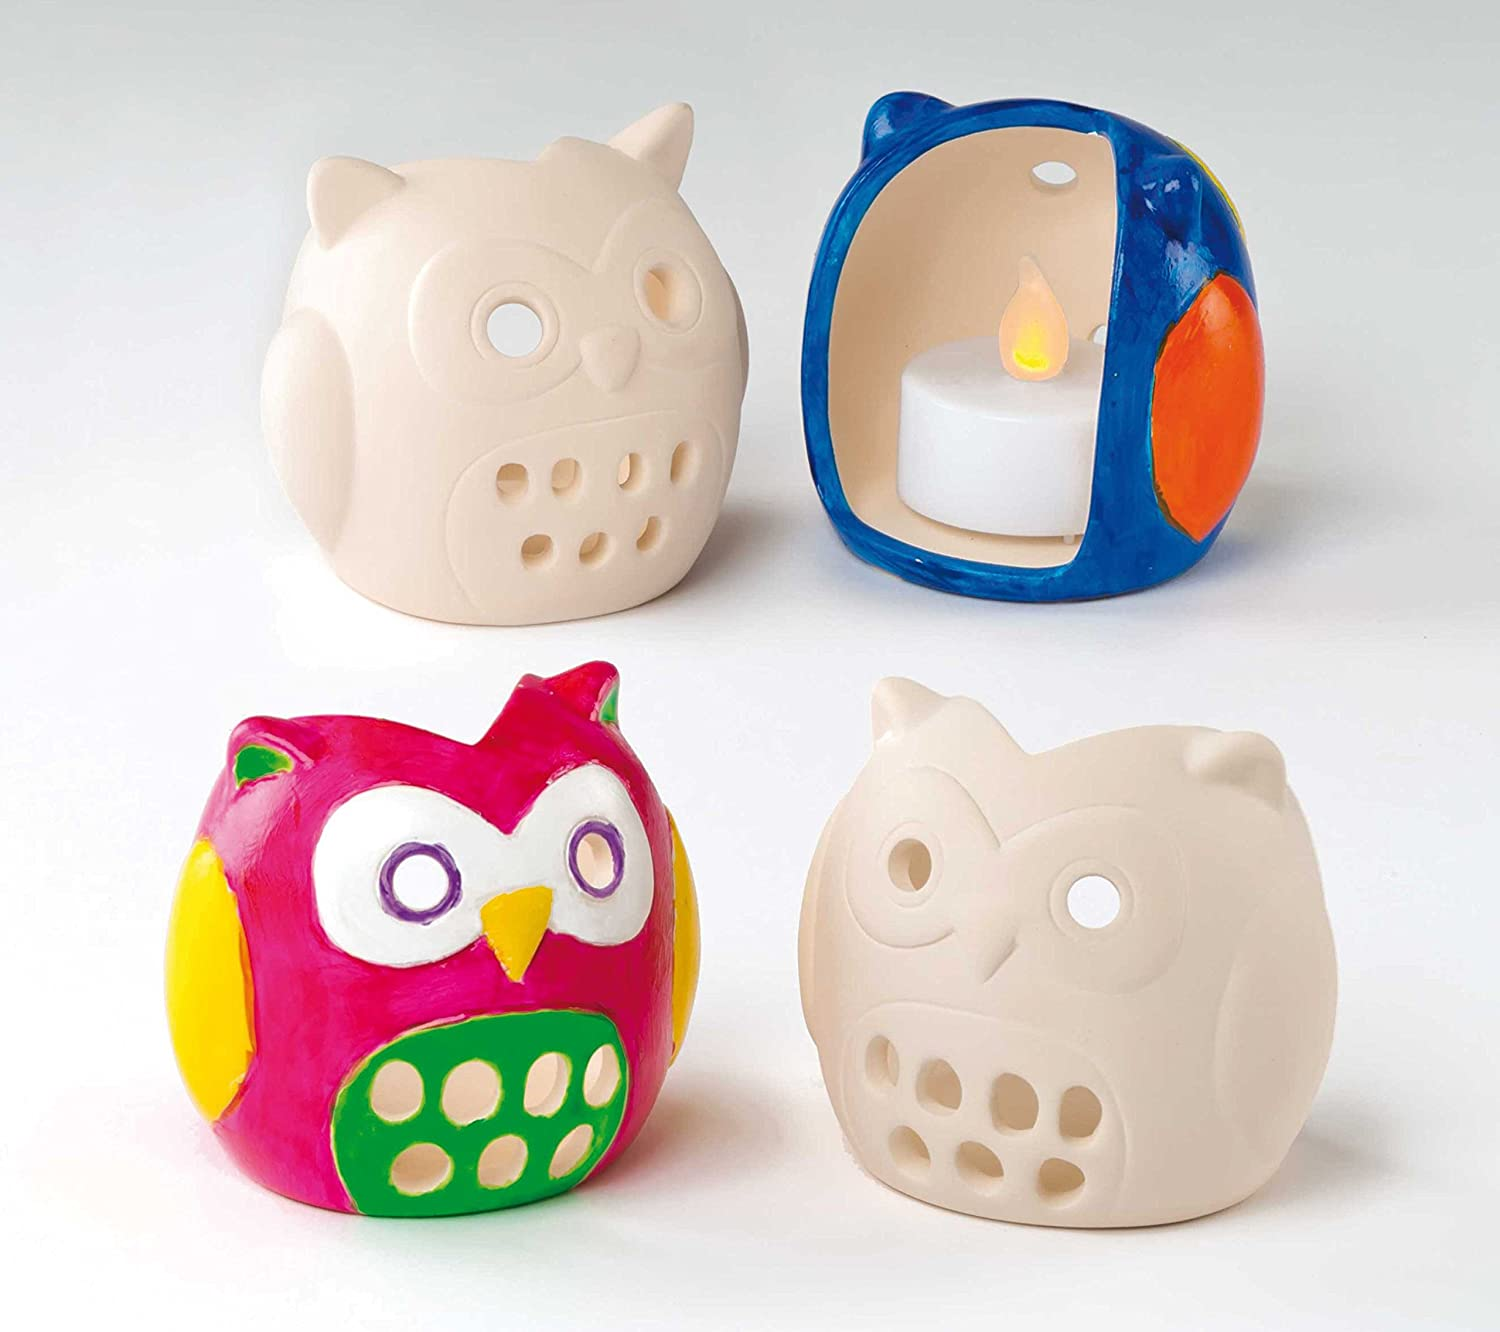 Baker Ross Paint Your Own Tealight Holder (Box Of 4) Owl Shaped Ceramic Tealight Holders For Kids To Paint & Decorate